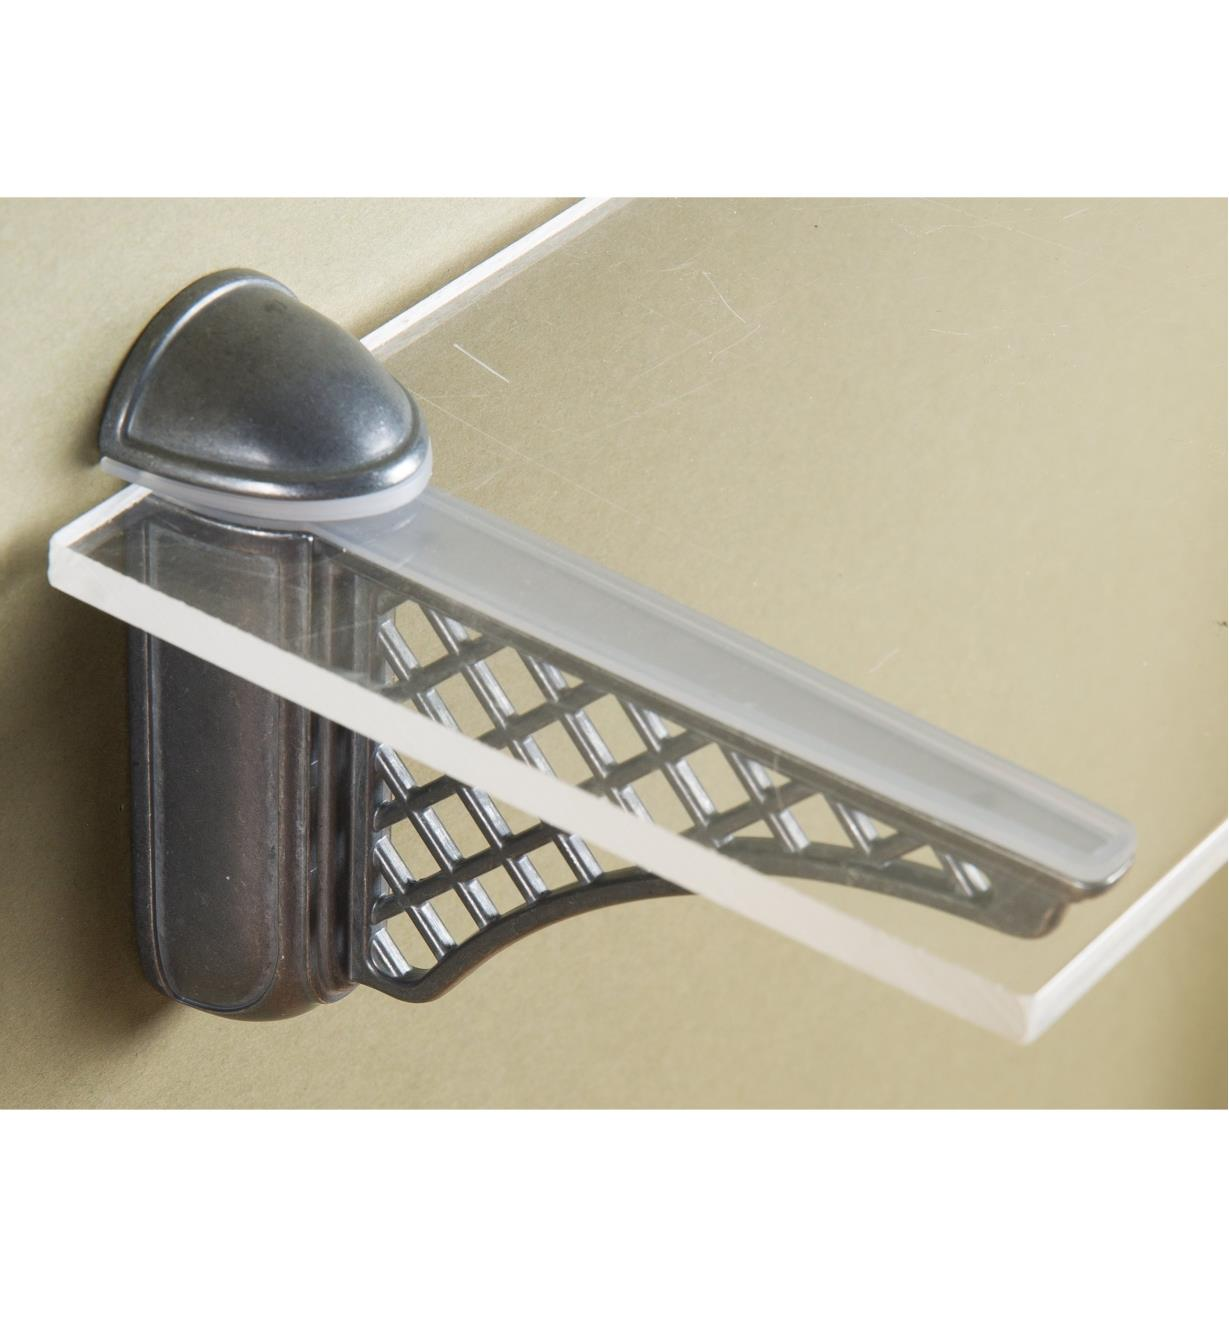 Colonial Dark Bronze Adjustable Bracket mounted on a wall with a glass shelf